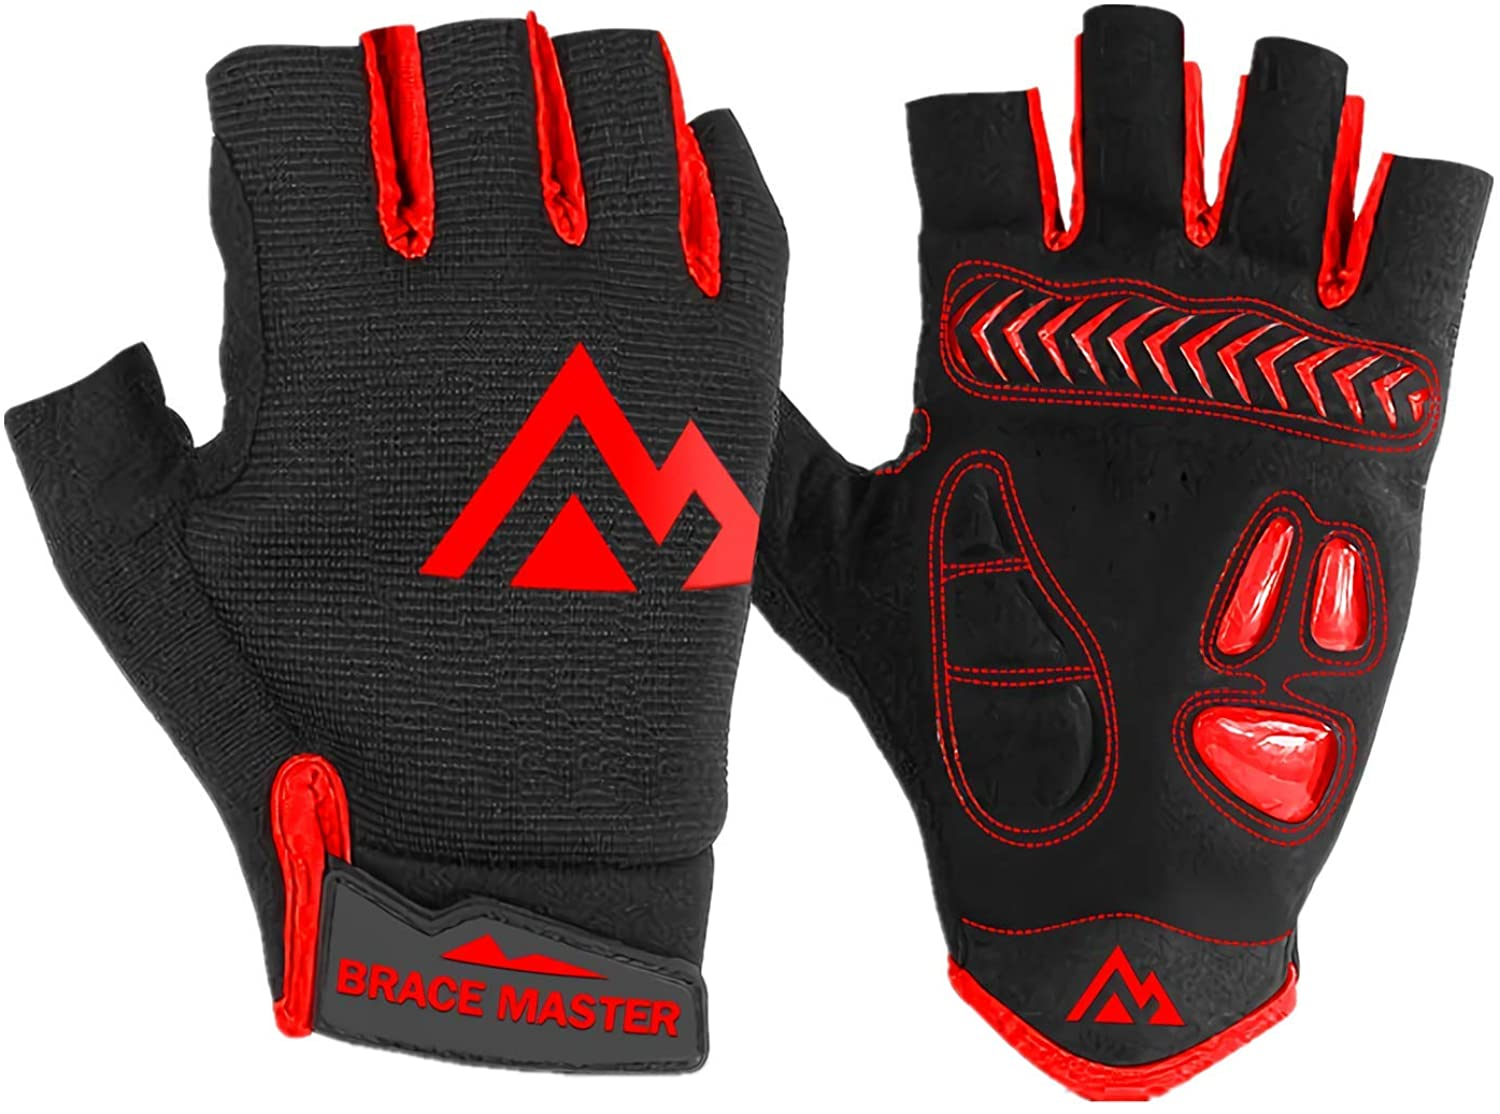 Brace Master Cycling Gloves Bicycle Gloves Bike Gloves Mountain Bike Gloves – Anti Slip Shock Absorbing Padded Breathable Lightweight Fingerless Gloves Sports Accessory for Men and Women